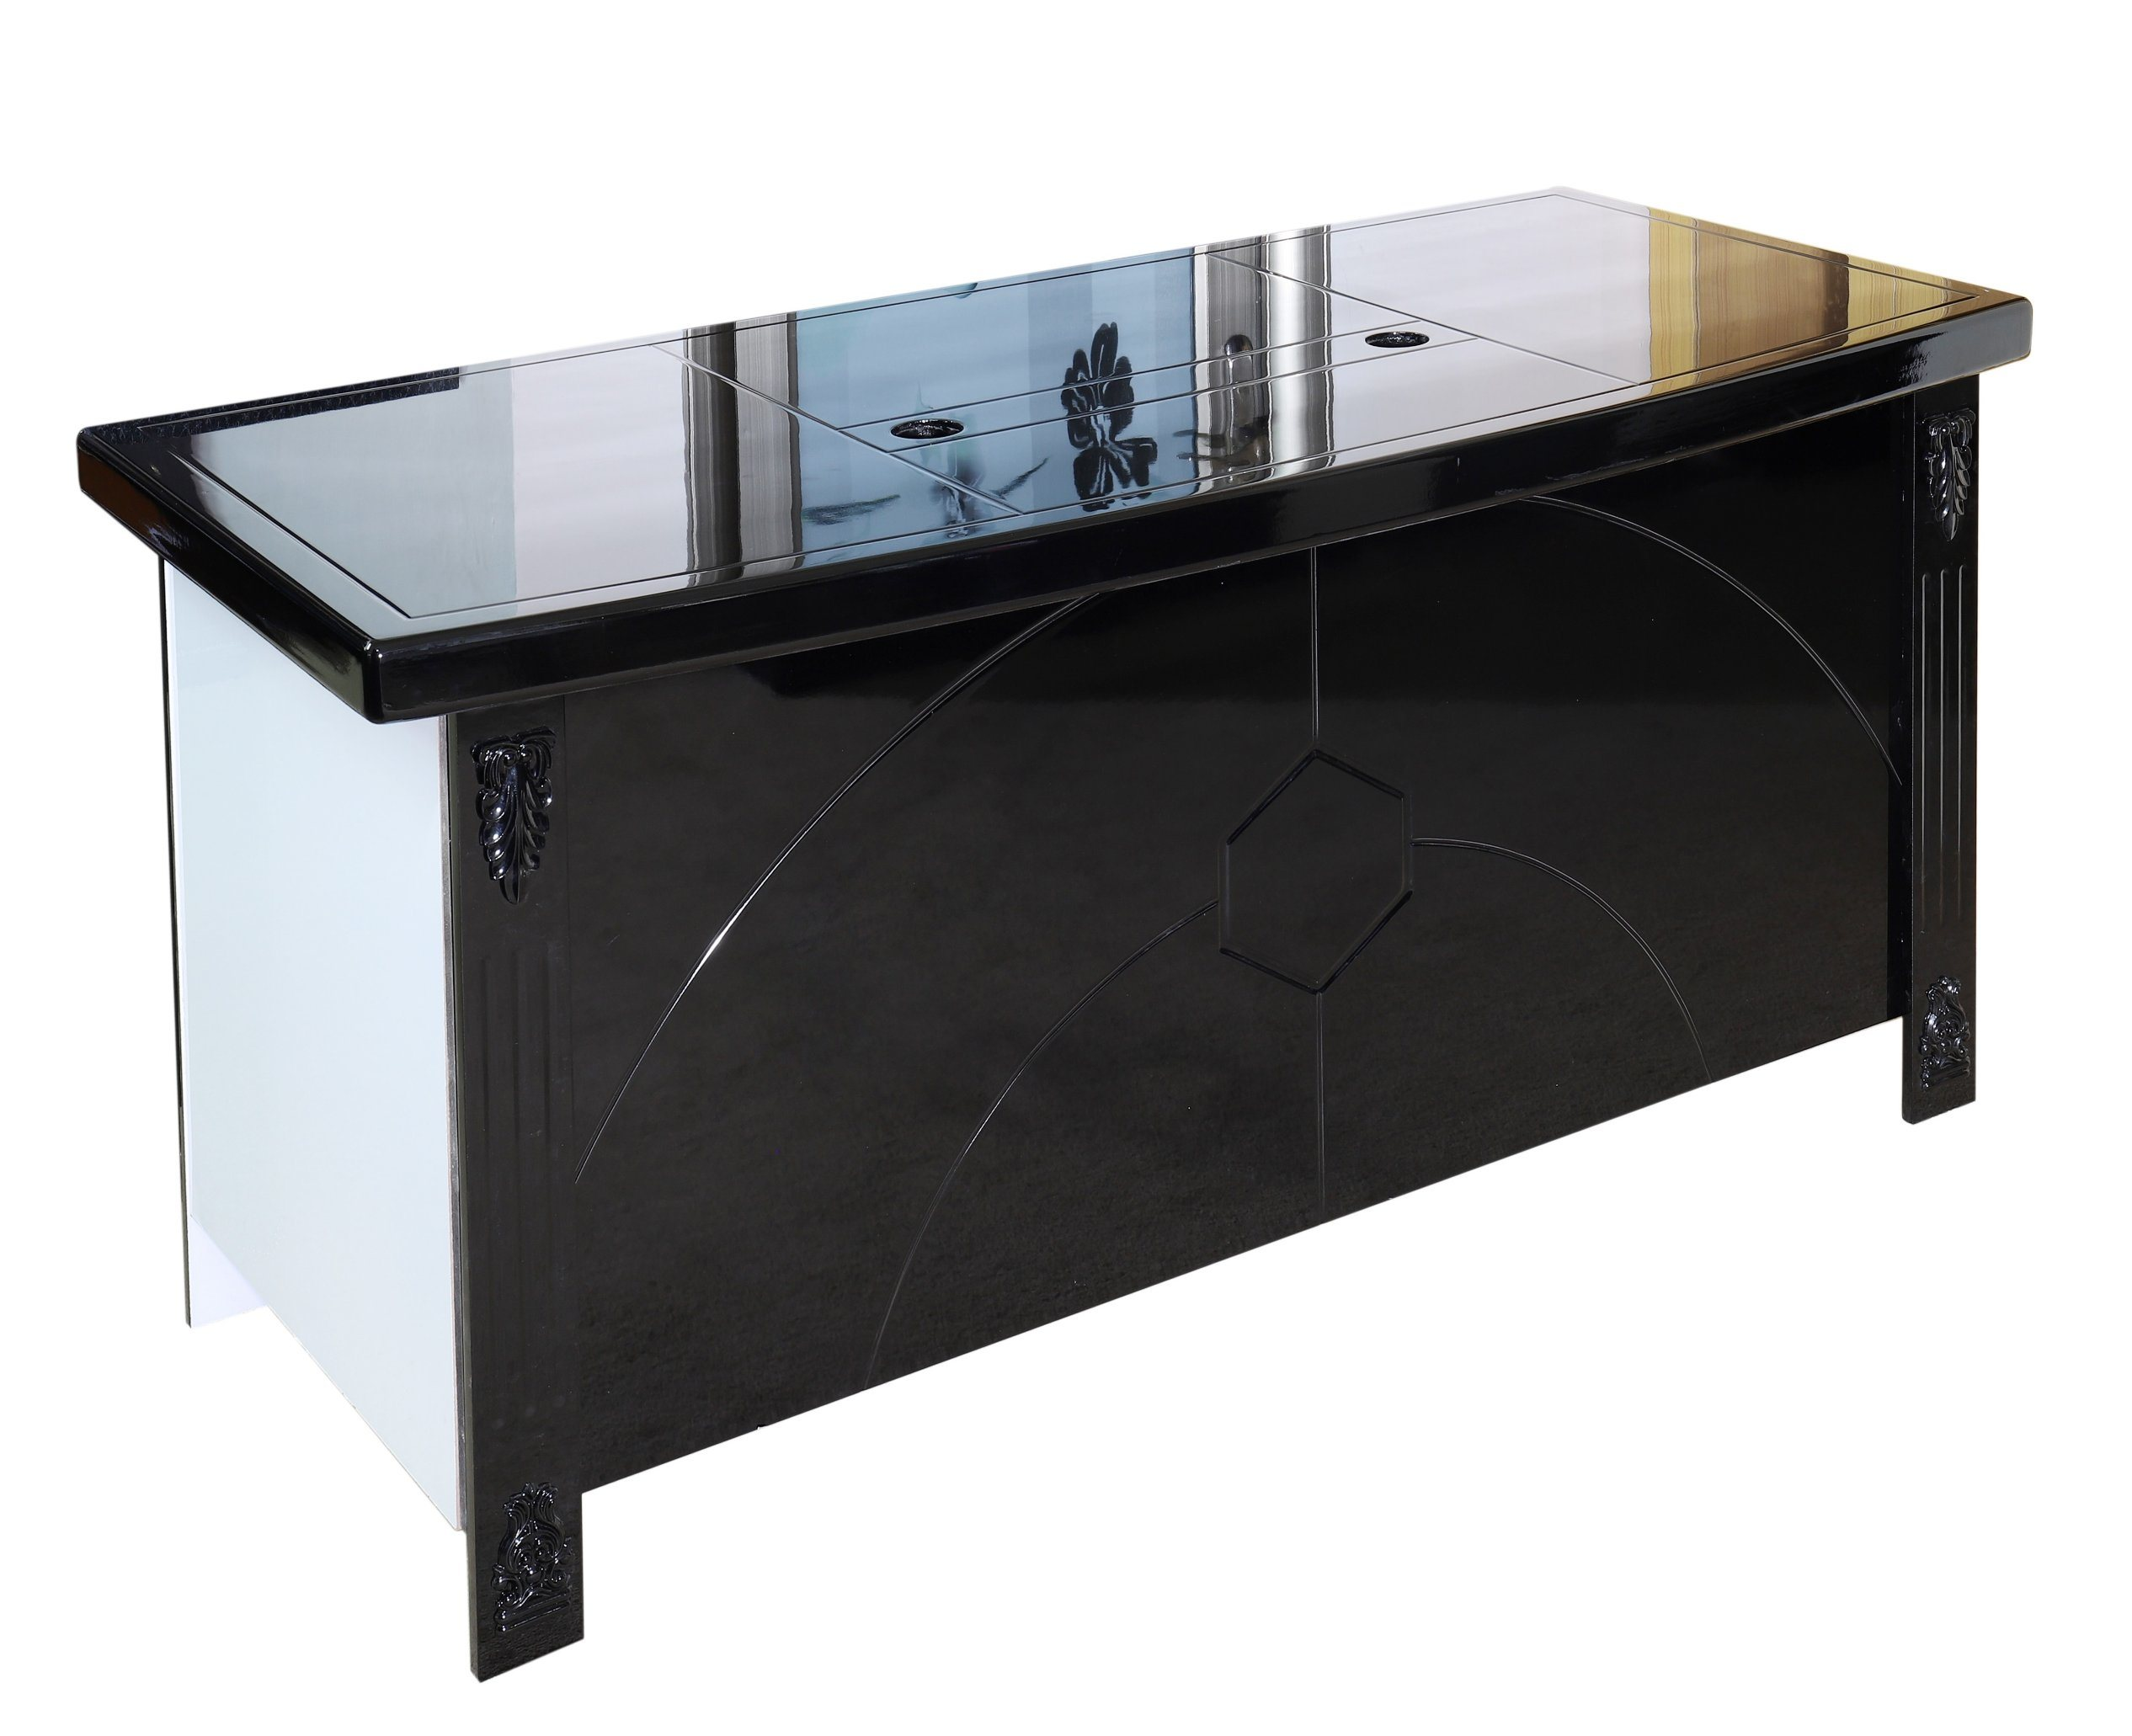 China office table executive desk modern new design manager table executive table office furniture 2019 cheap price hot selling china office table